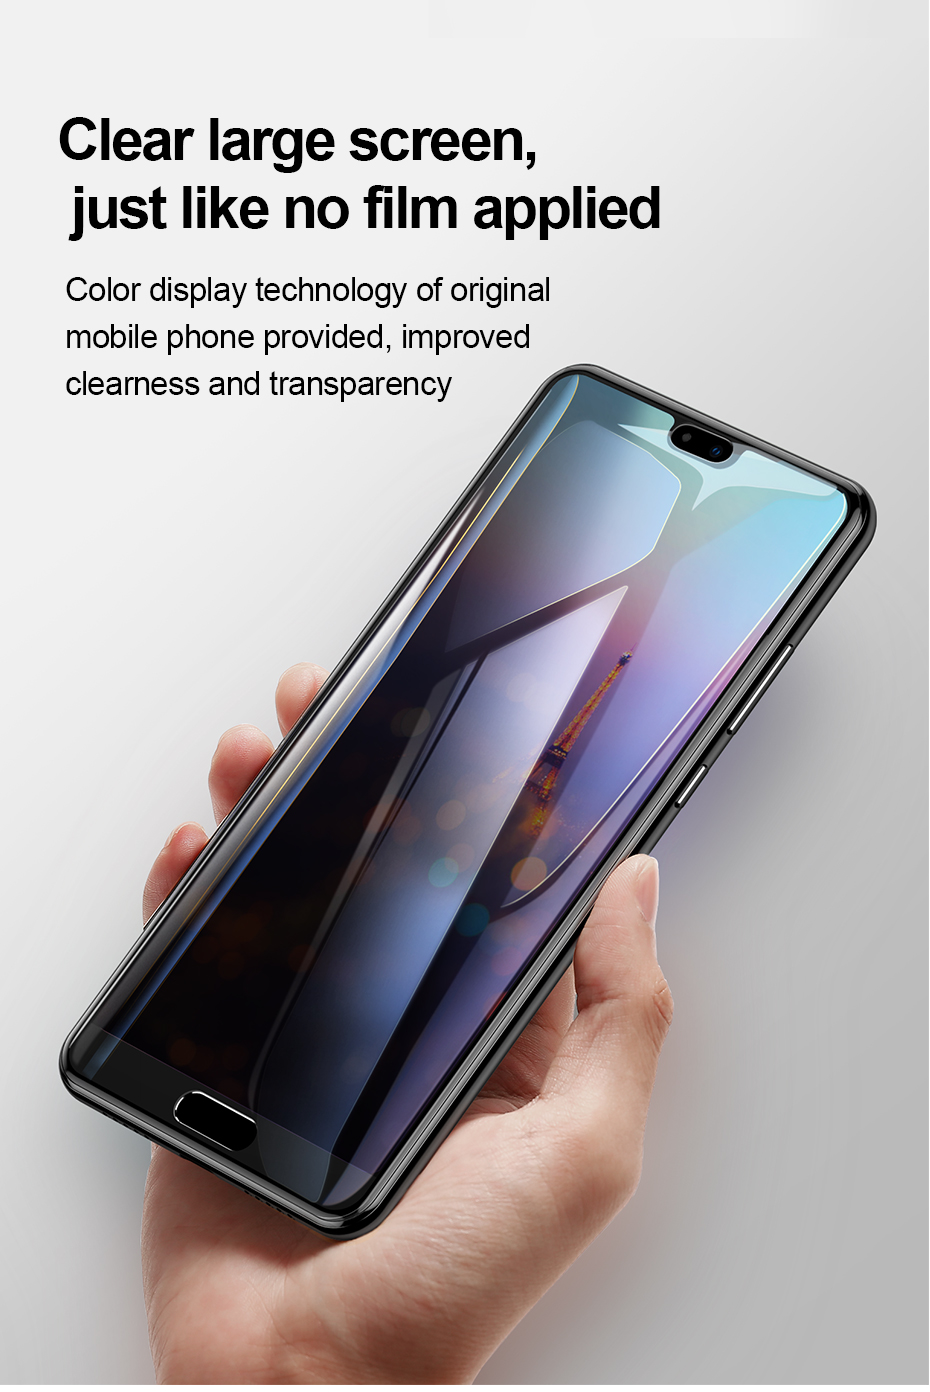 Baseus Huawei P20 0.3mm Privacy Full Cover Curve Anti-spy Black tempered glass_14.jpg